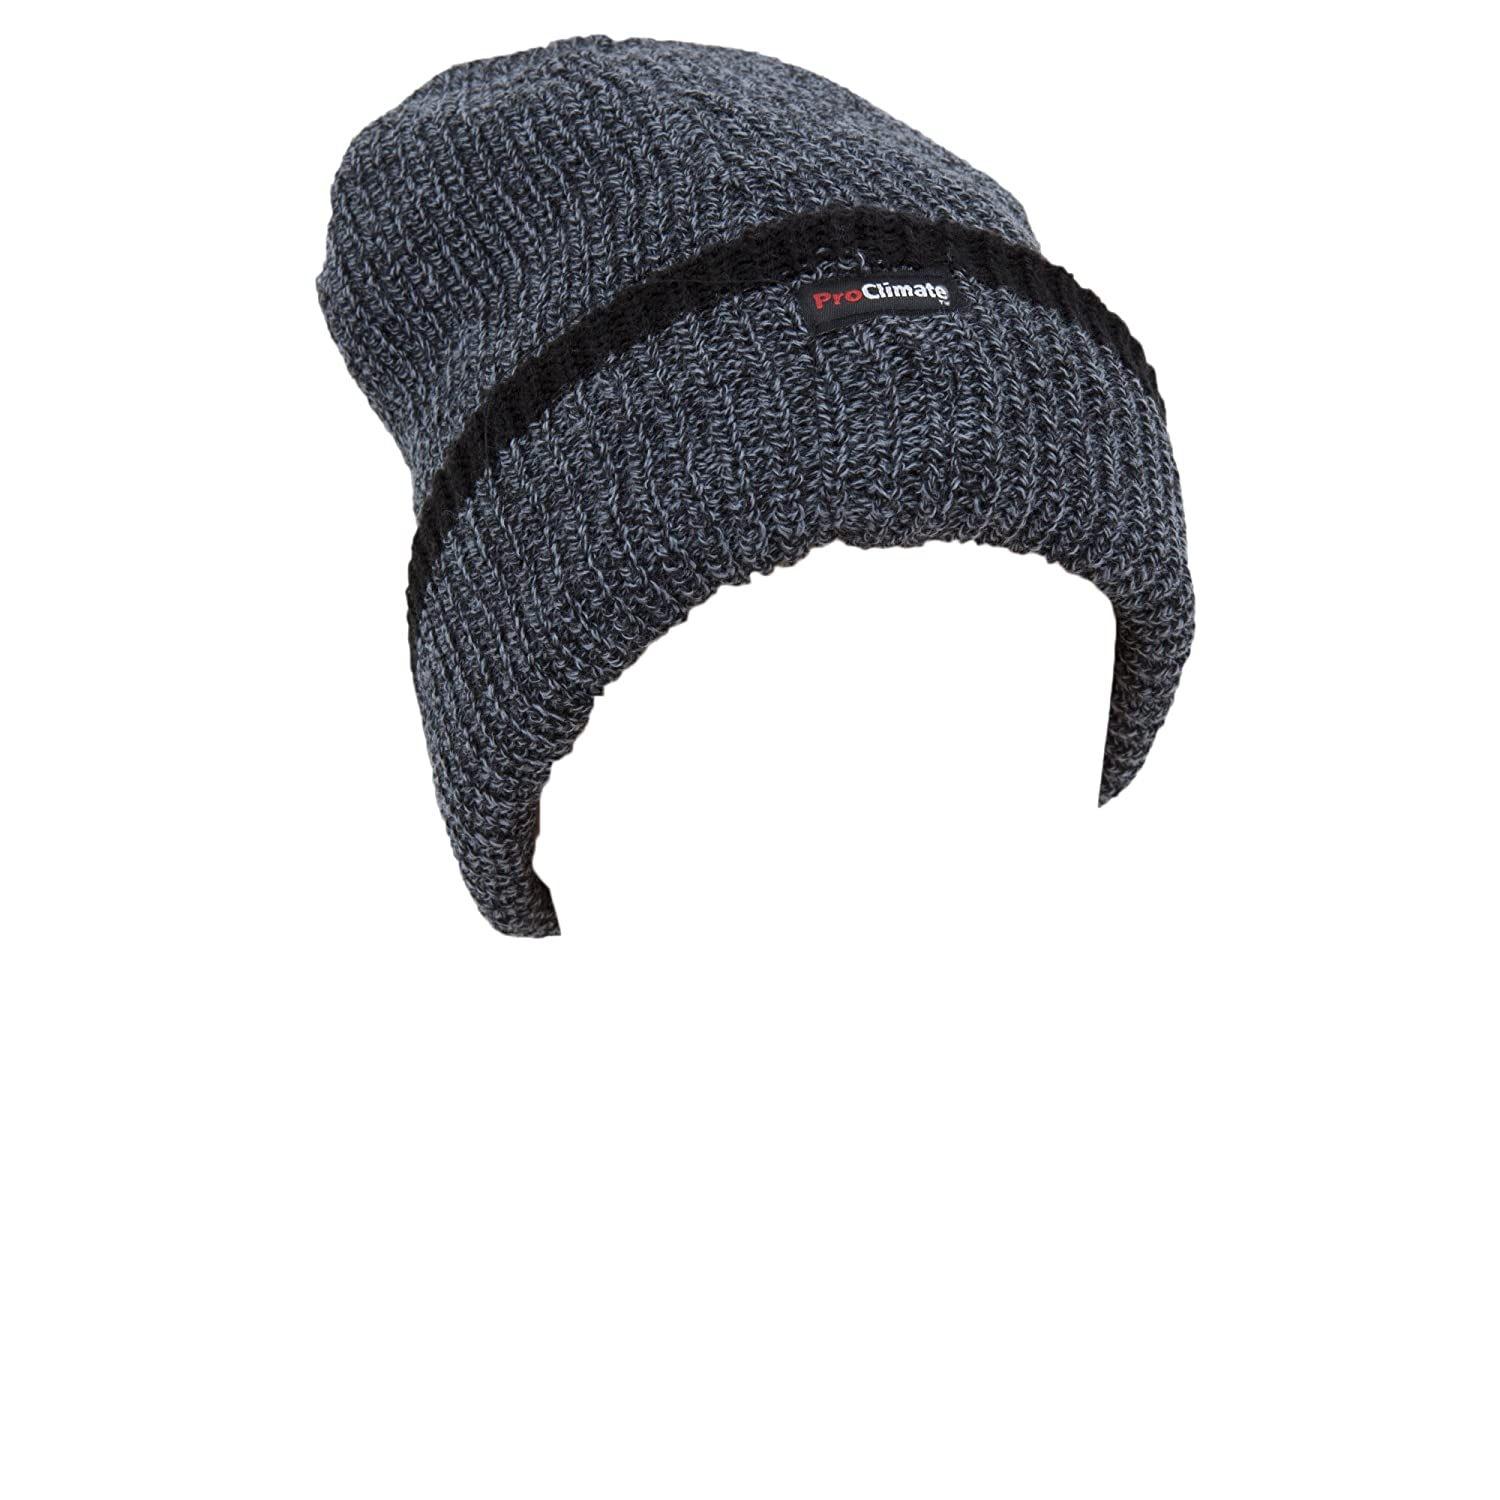 455550712c9 Universal Textiles Mens Thinsulate Knitted Thermal Heavy Winter Ski Hat (3M  40g) (One size) (Grey)  Amazon.co.uk  Clothing